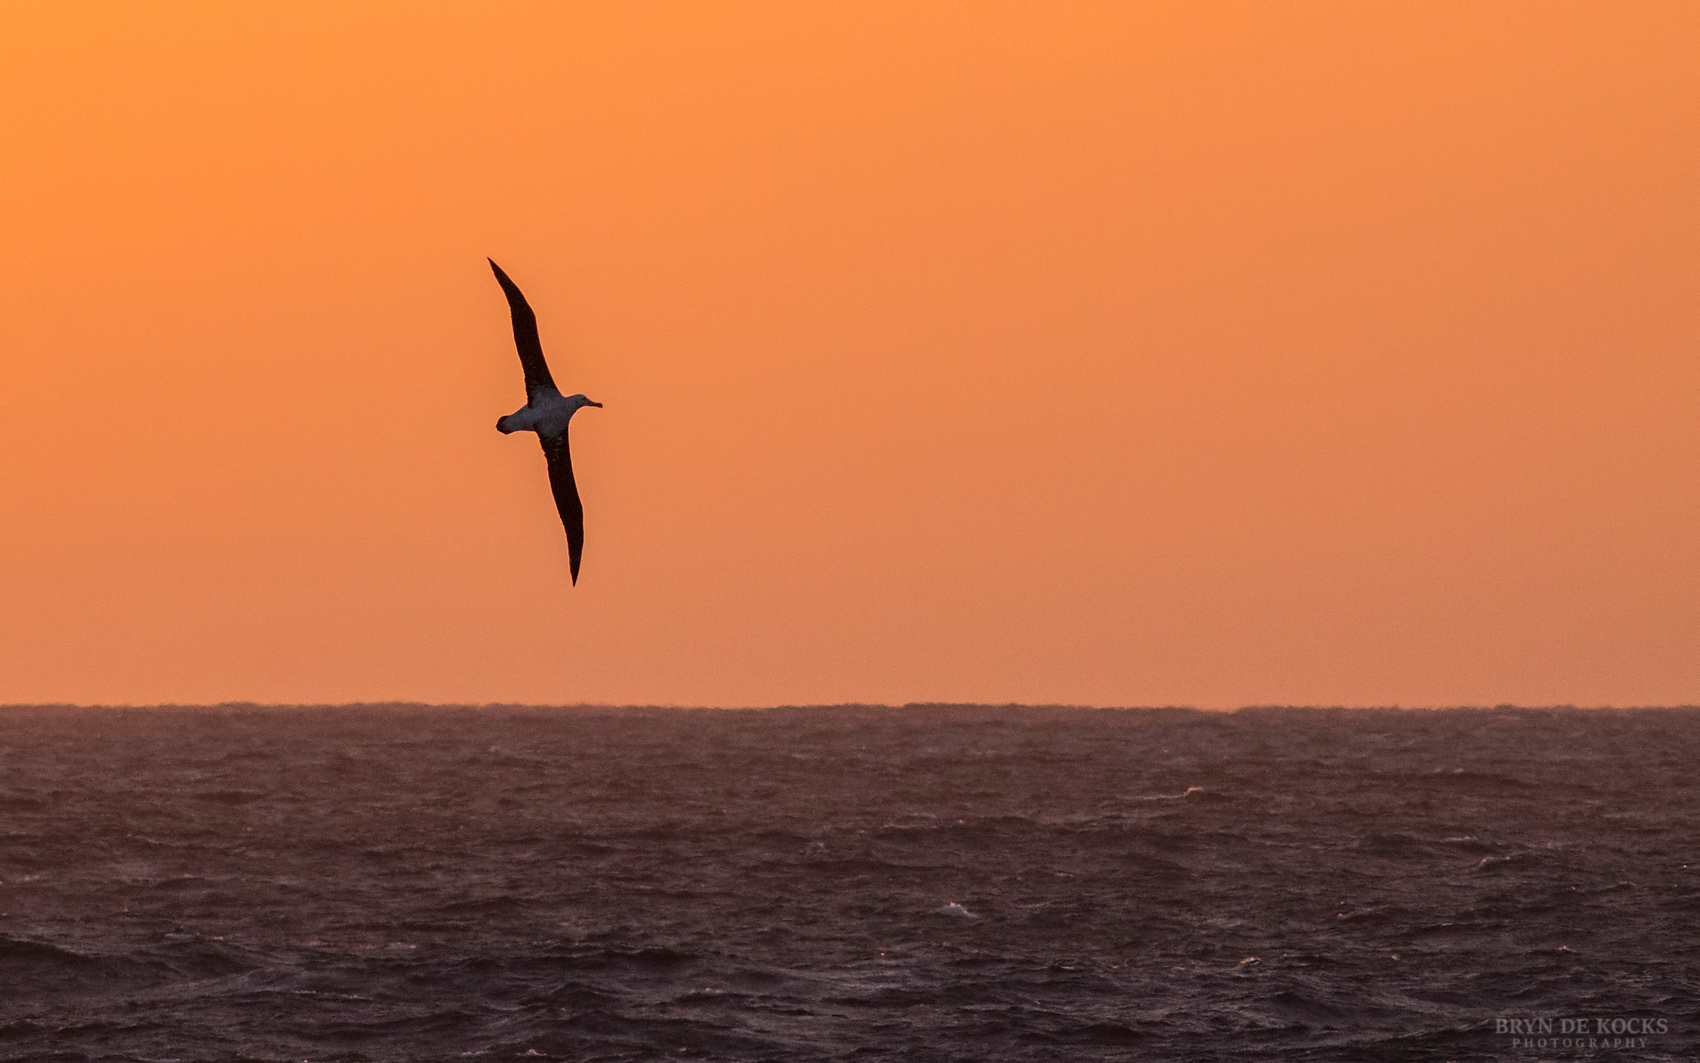 Wandering Albatross flying above the horizon at sunrise